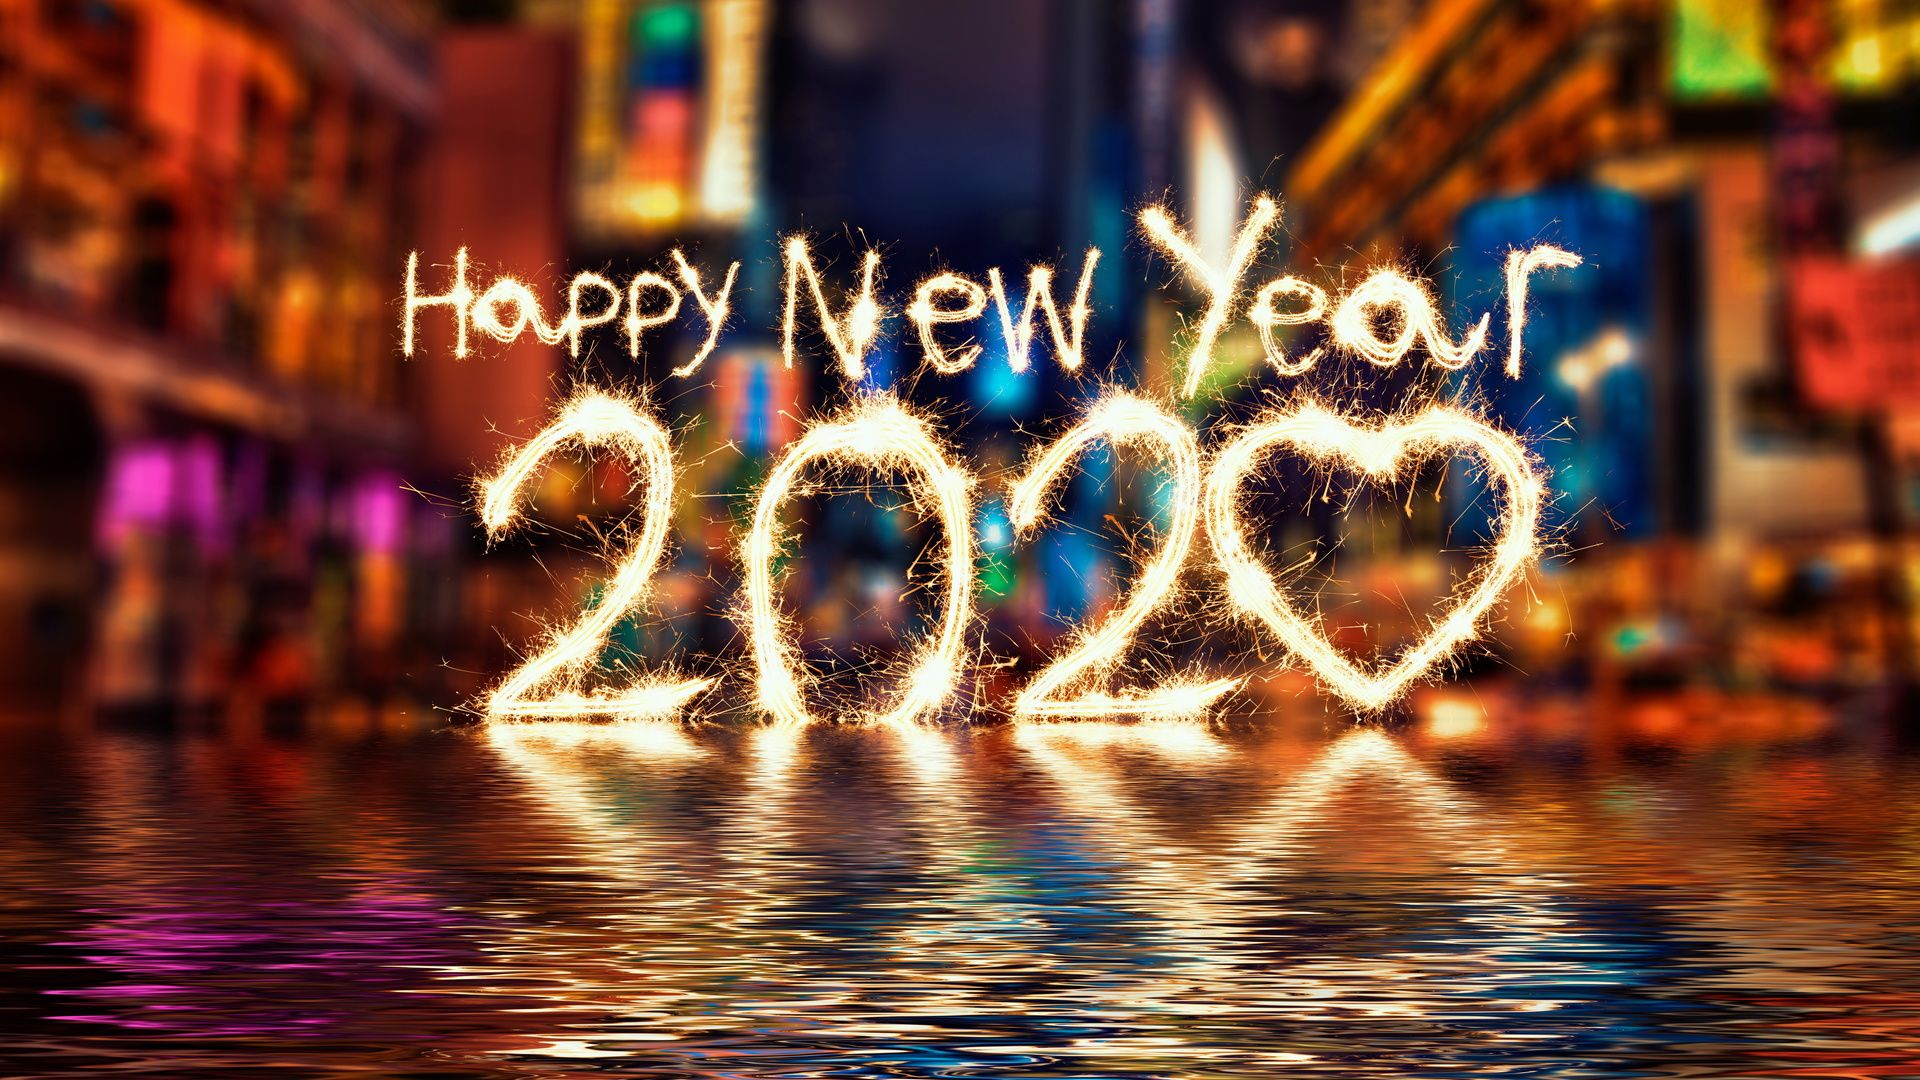 New Year 2020 Wallpapers 15 images   WallpaperBoat 1920x1080